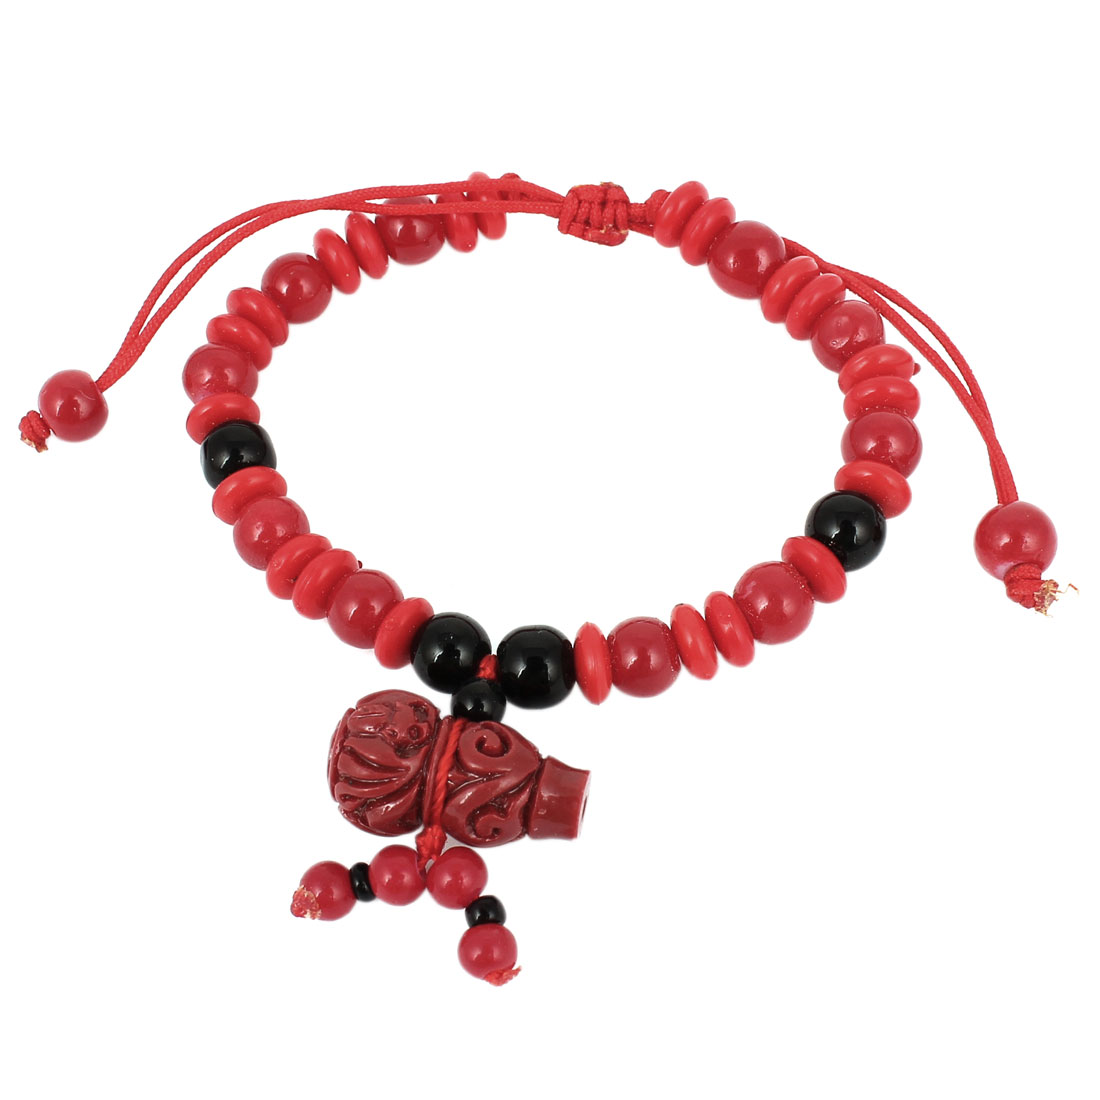 Plastic Carved Cucurbit Detailing Black Red Beads Chain Draw String Bracelet